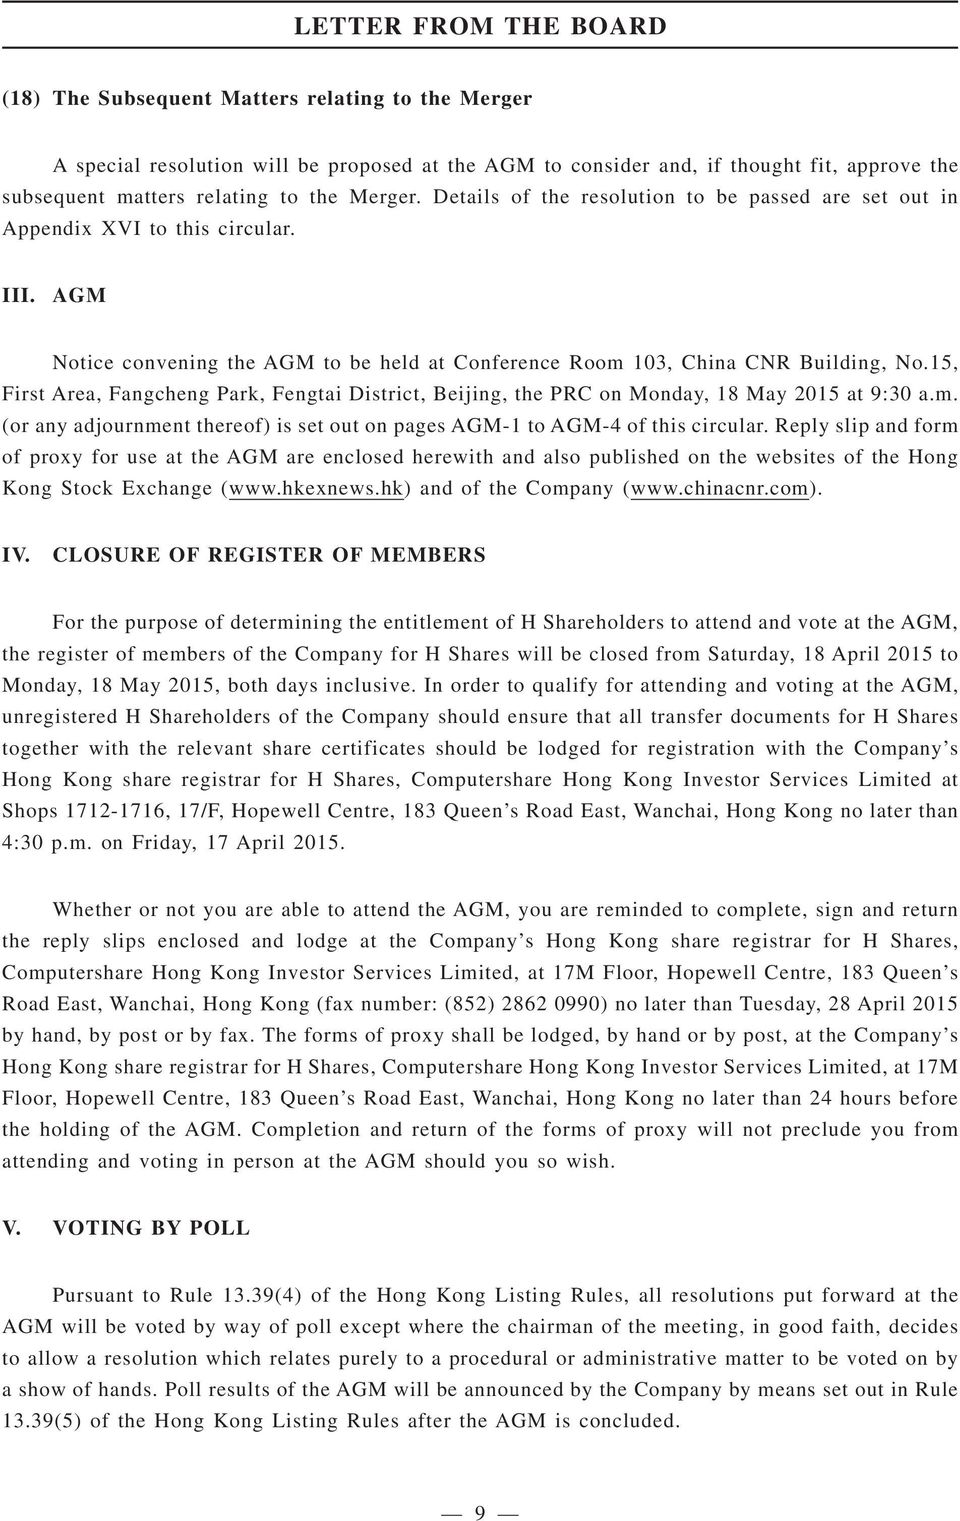 15, First Area, Fangcheng Park, Fengtai District, Beijing, the PRC on Monday, 18 May 2015 at 9:30 a.m. (or any adjournment thereof) is set out on pages AGM-1 to AGM-4 of this circular.